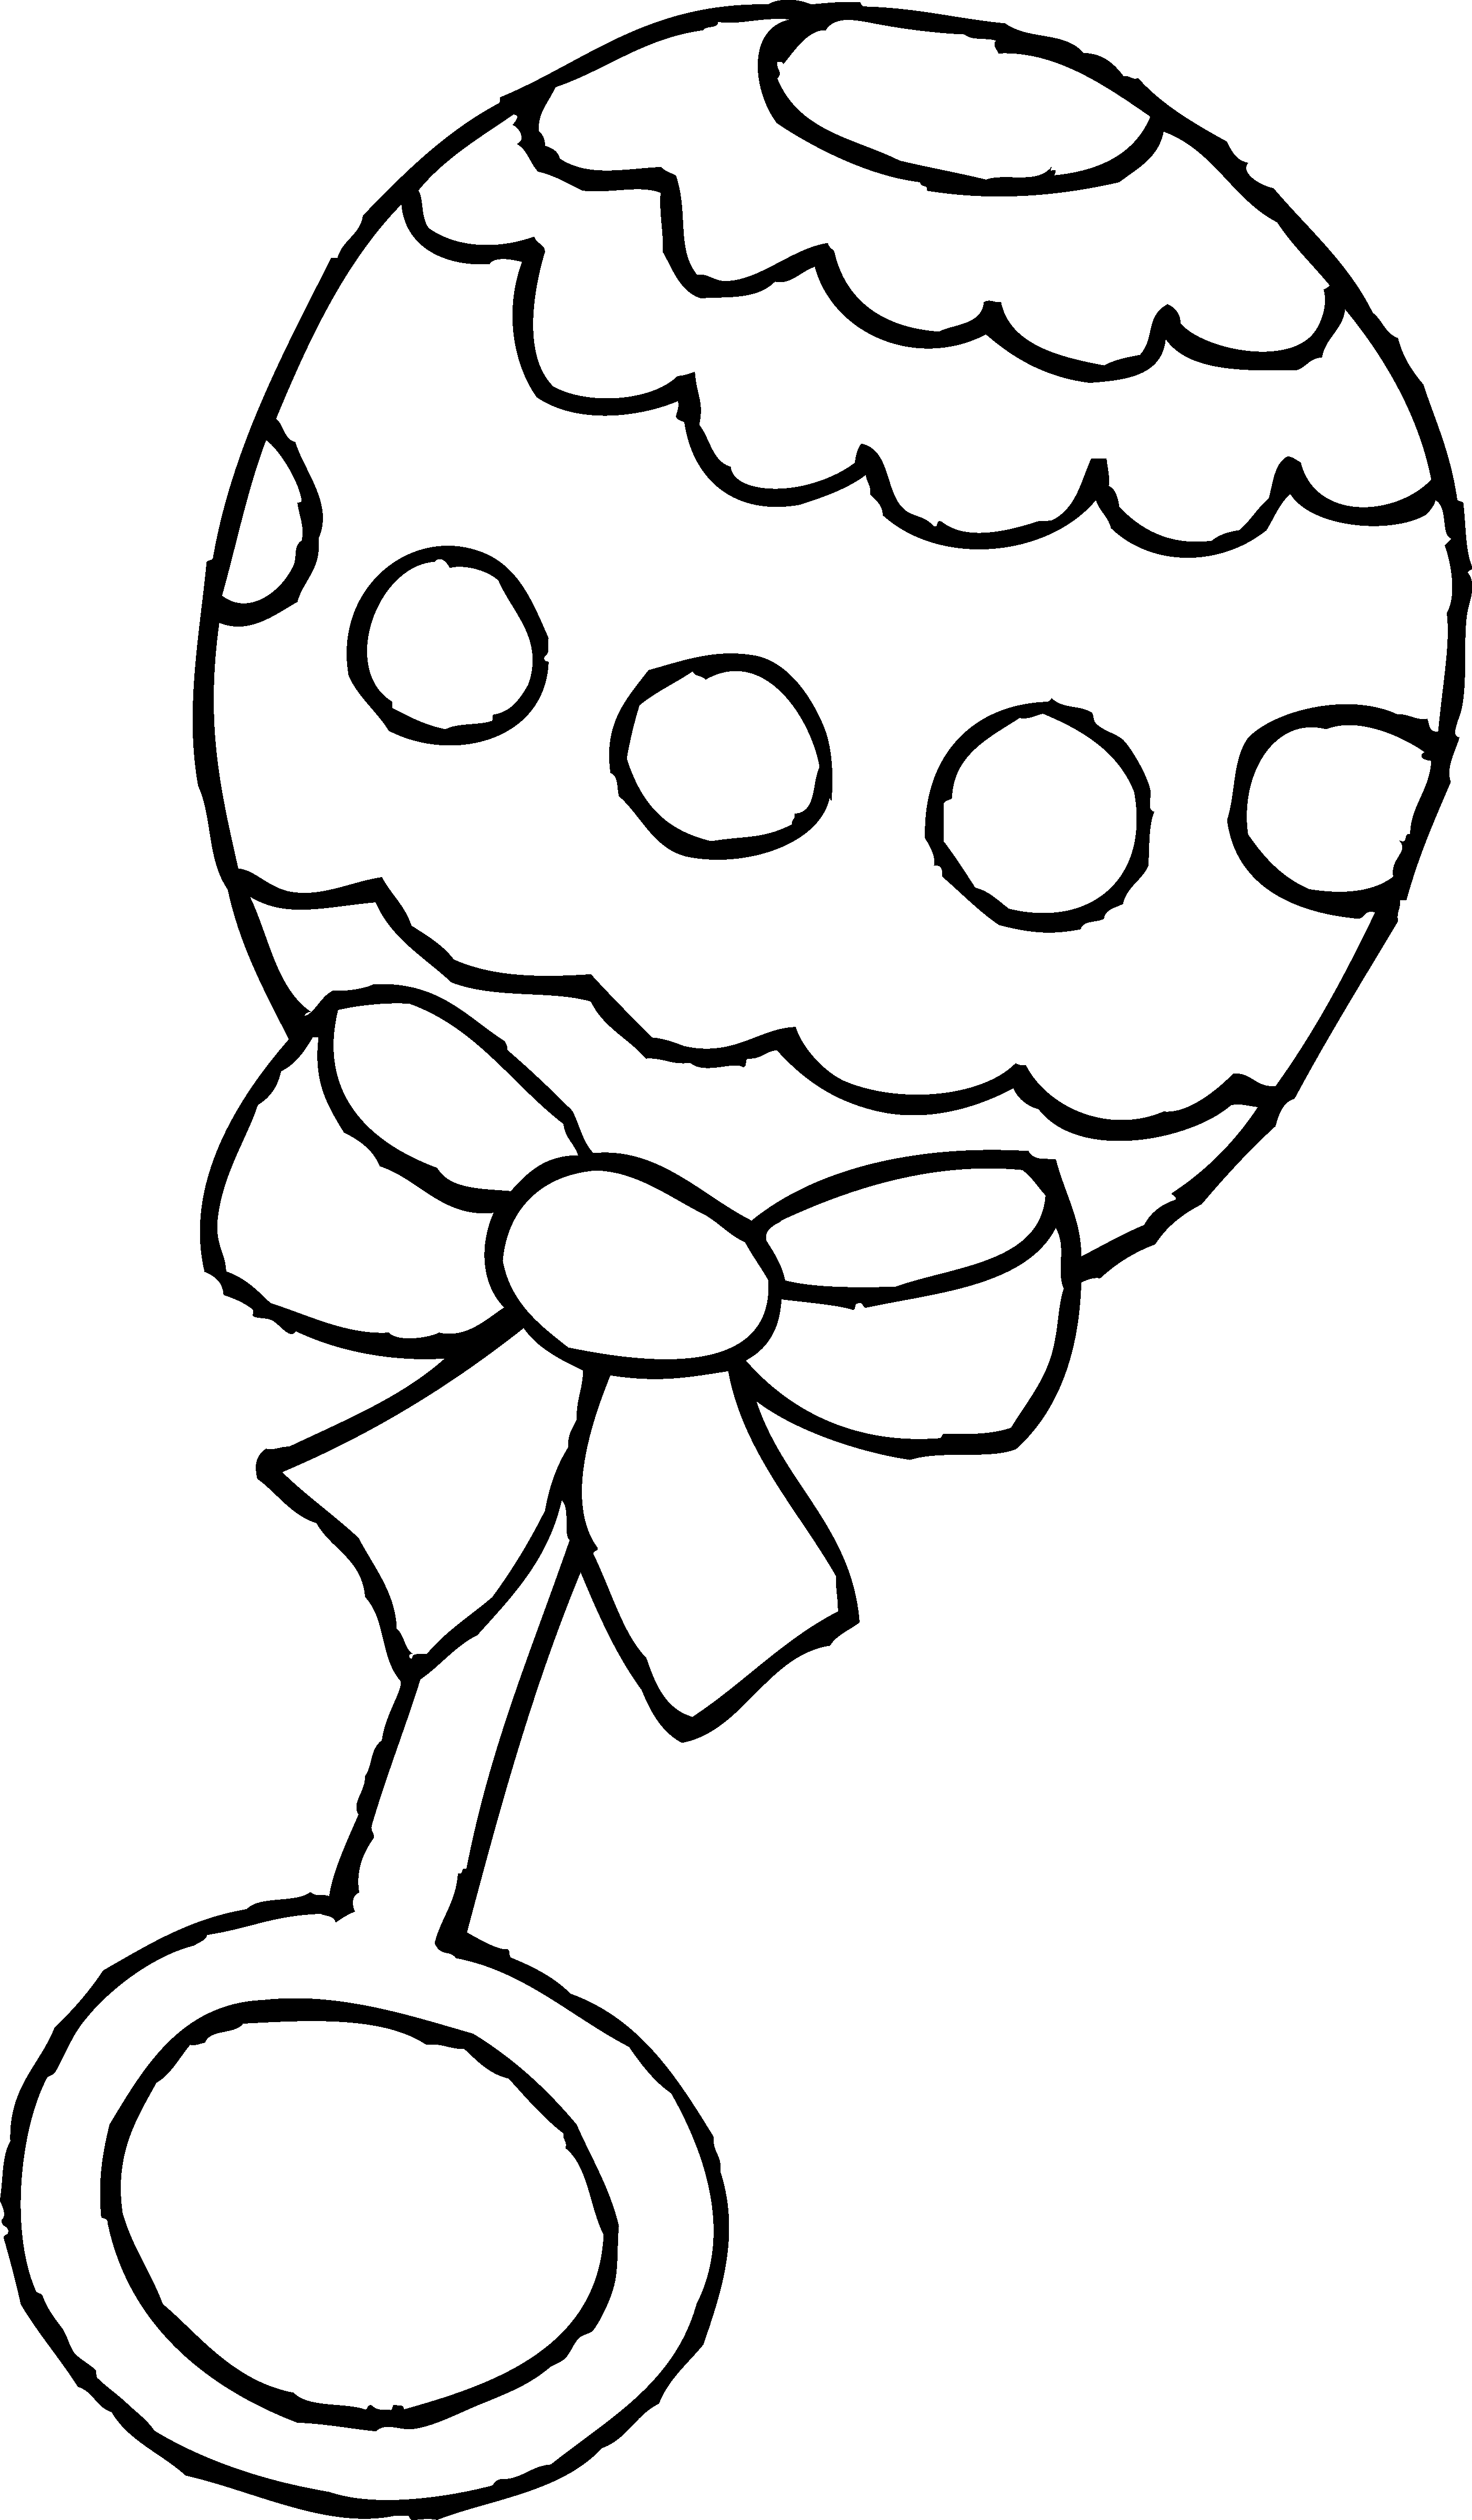 2803x4798 Peanut Drawing Baby For Free Download